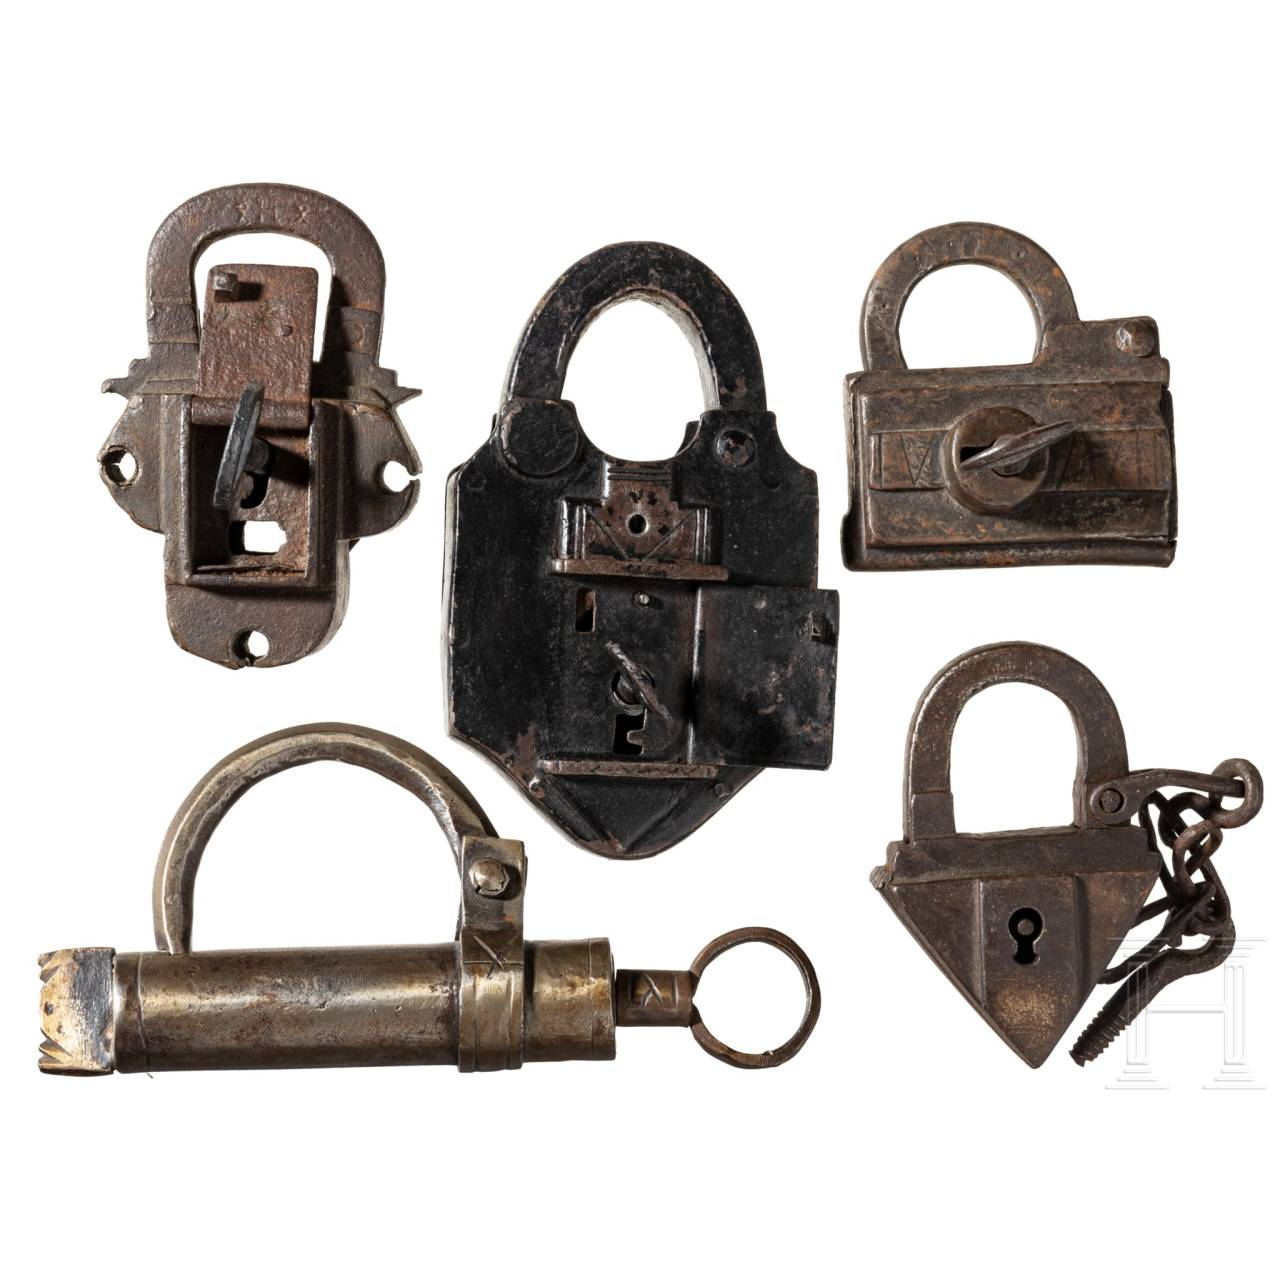 Five German padlocks, 17th to early-19th century